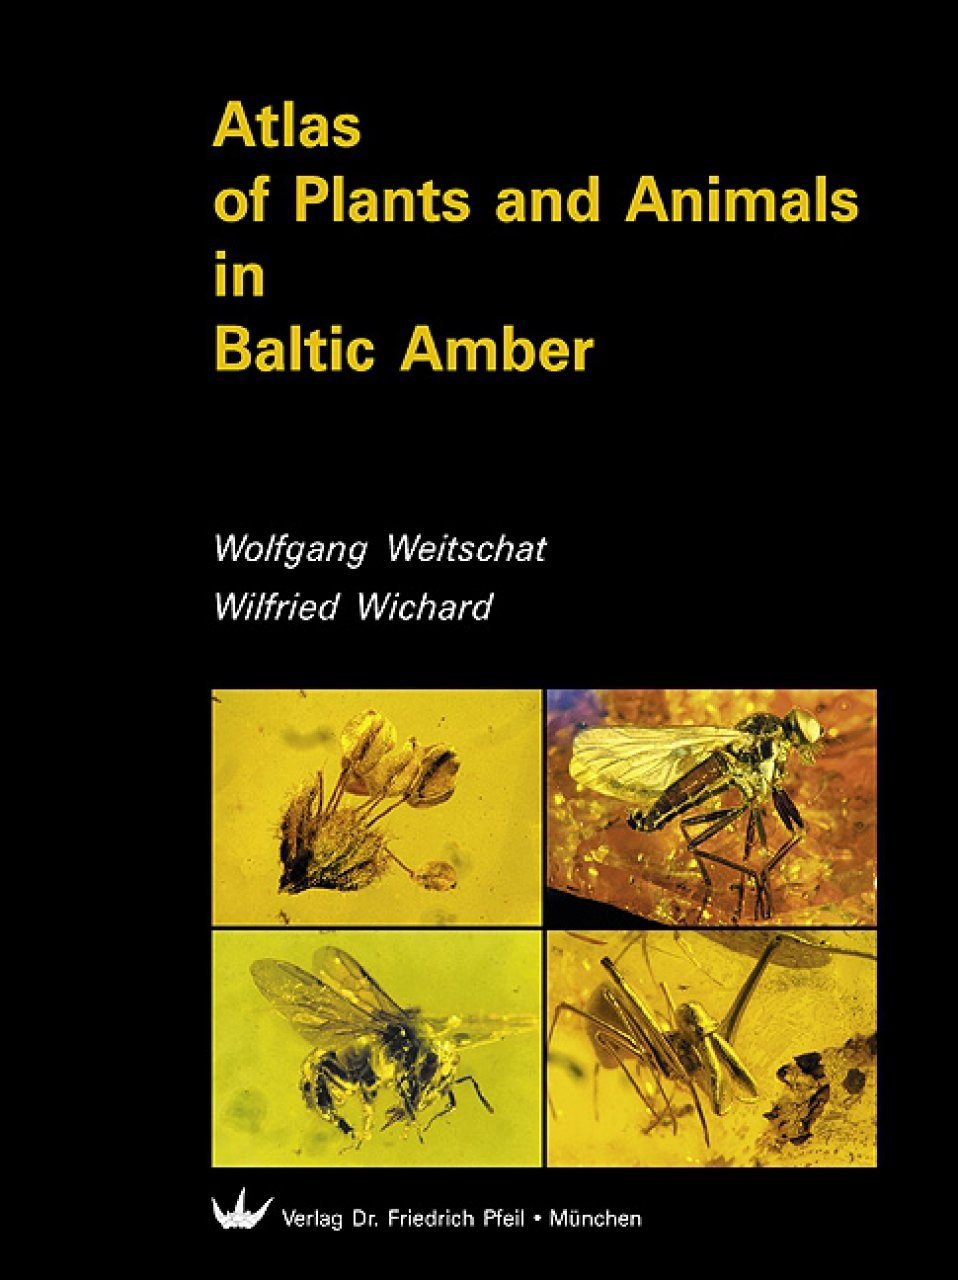 Atlas of Plants and Animals in Baltic Amber